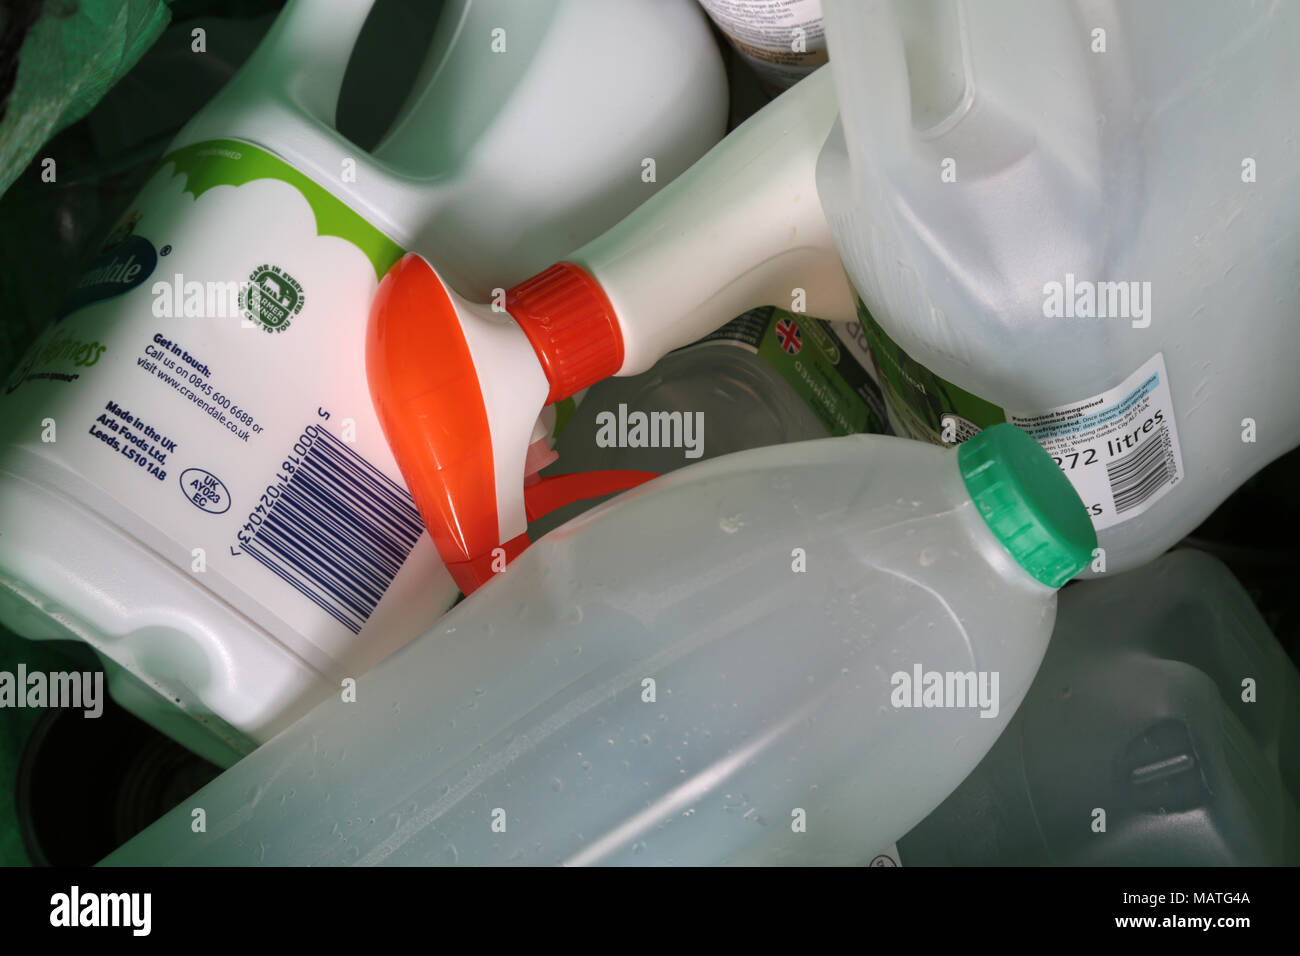 Plastic containers in a household recycling bin ready for collection in the uk. Stock Photo